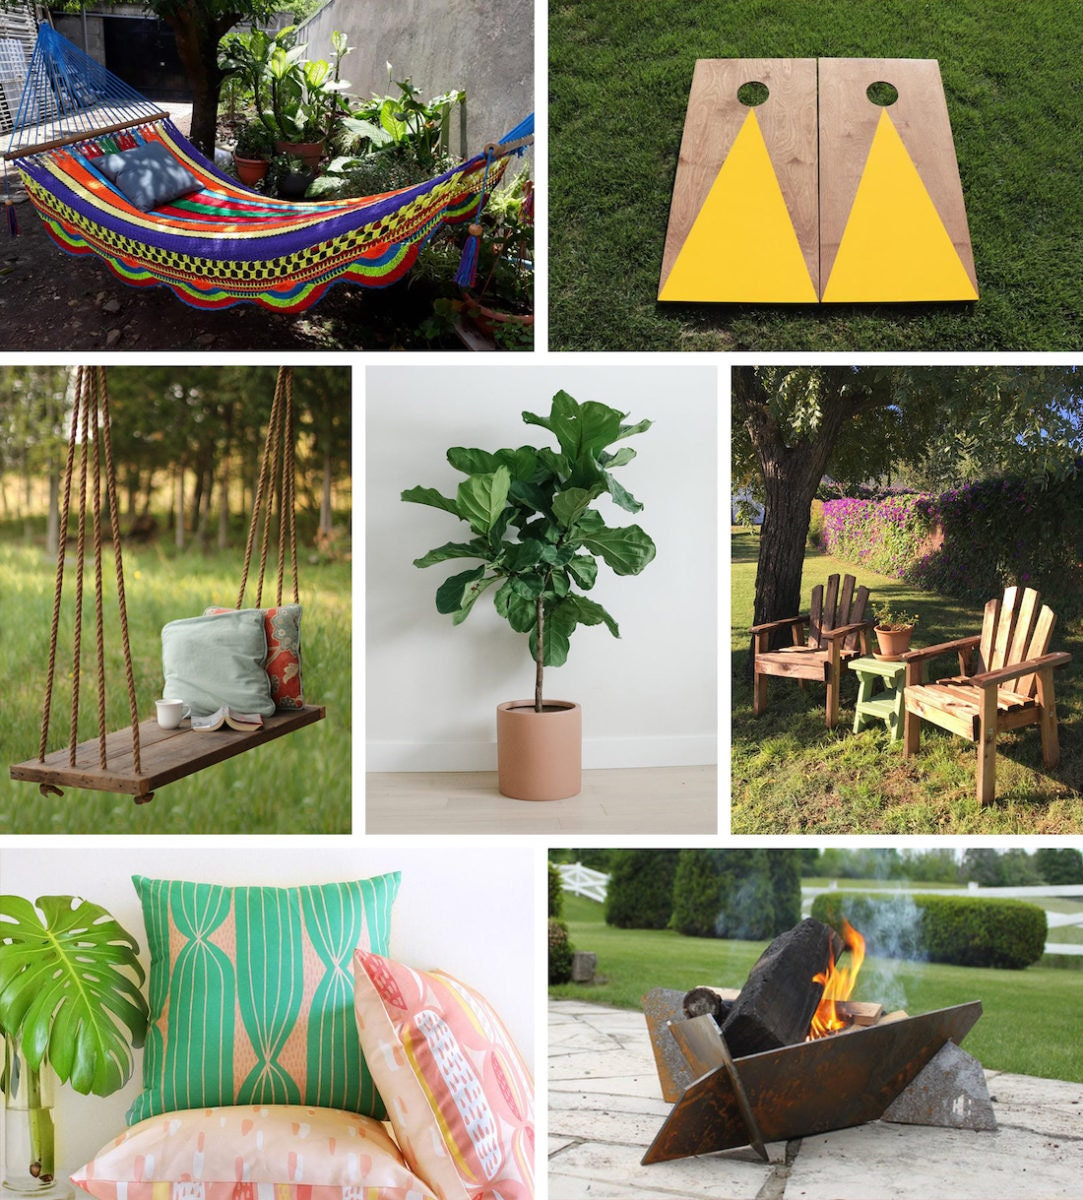 A collage of backyard finds from Etsy